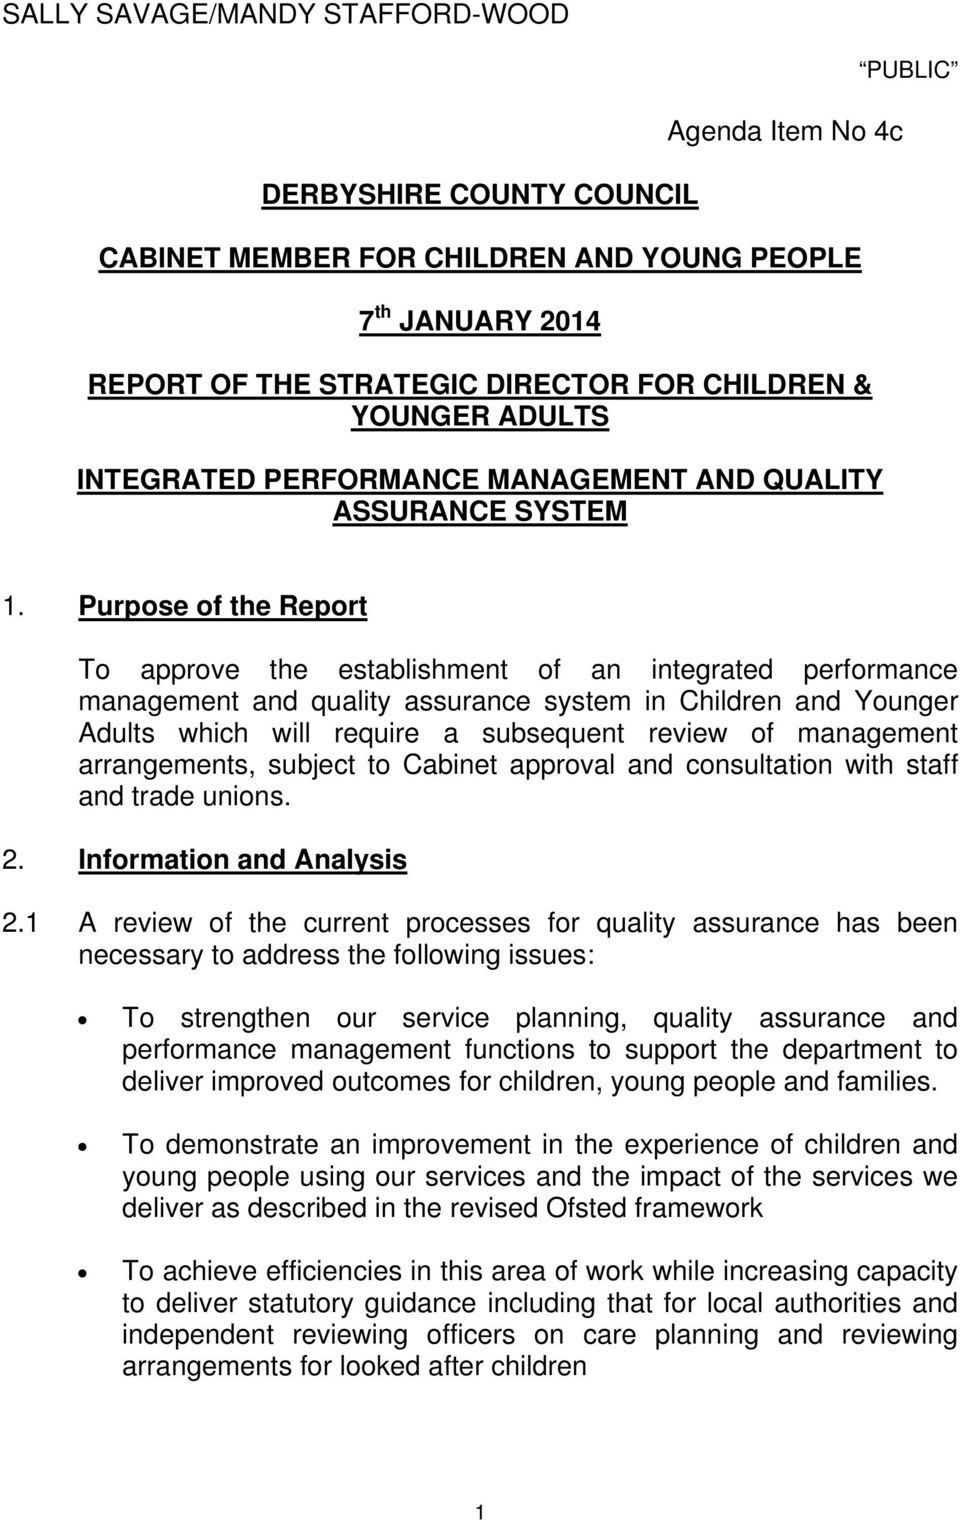 Purpose of the Report To approve the establishment of an integrated performance management and quality assurance system in Children and Younger Adults which will require a subsequent review of